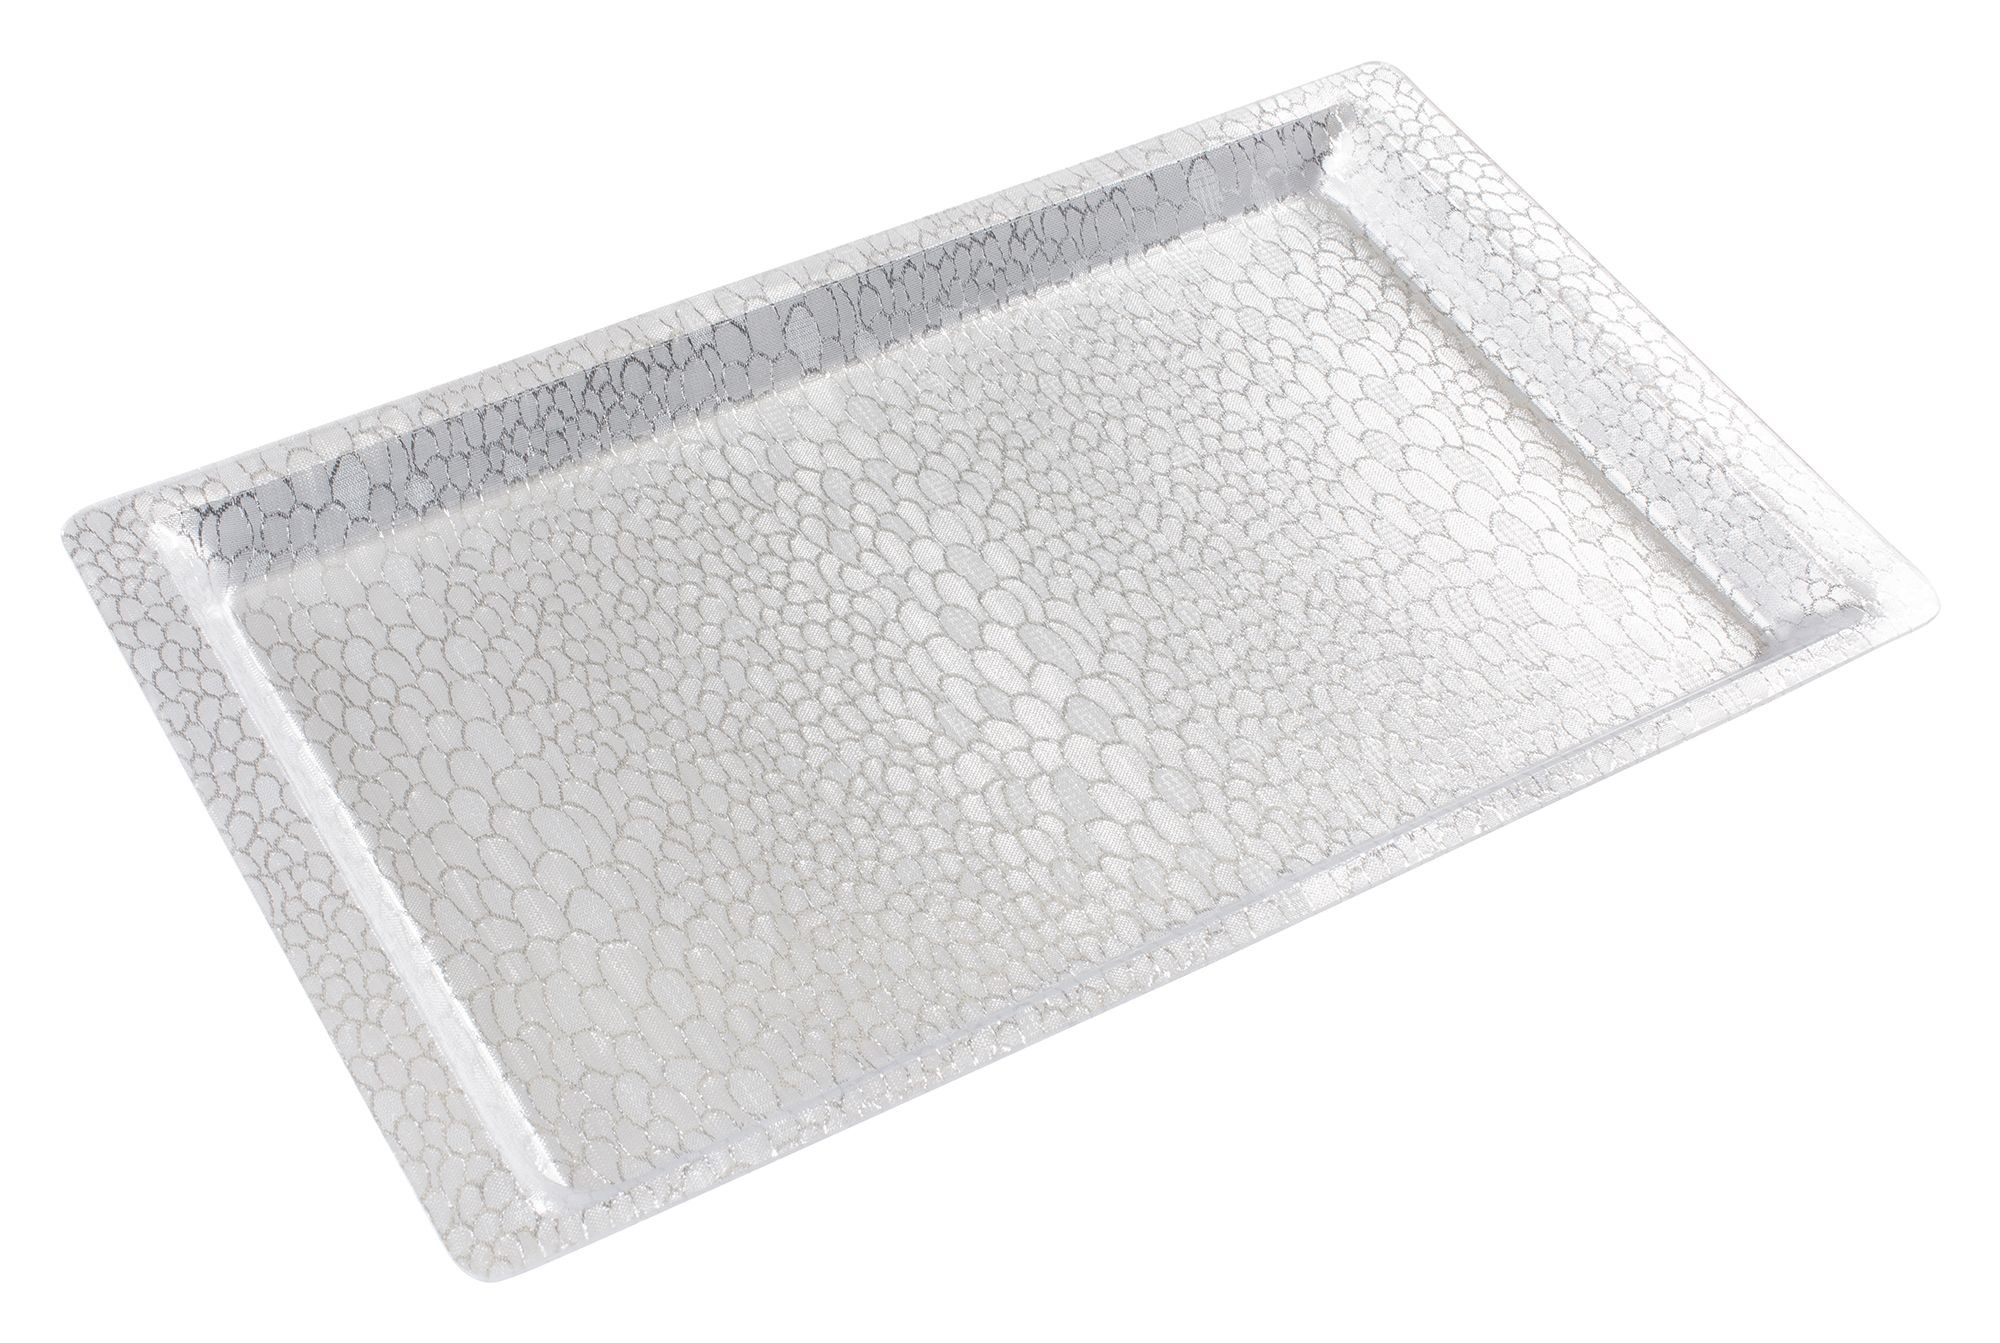 Full Size Silver Textured Acrylic Display Tray - 20-3/4 X 12-3/4